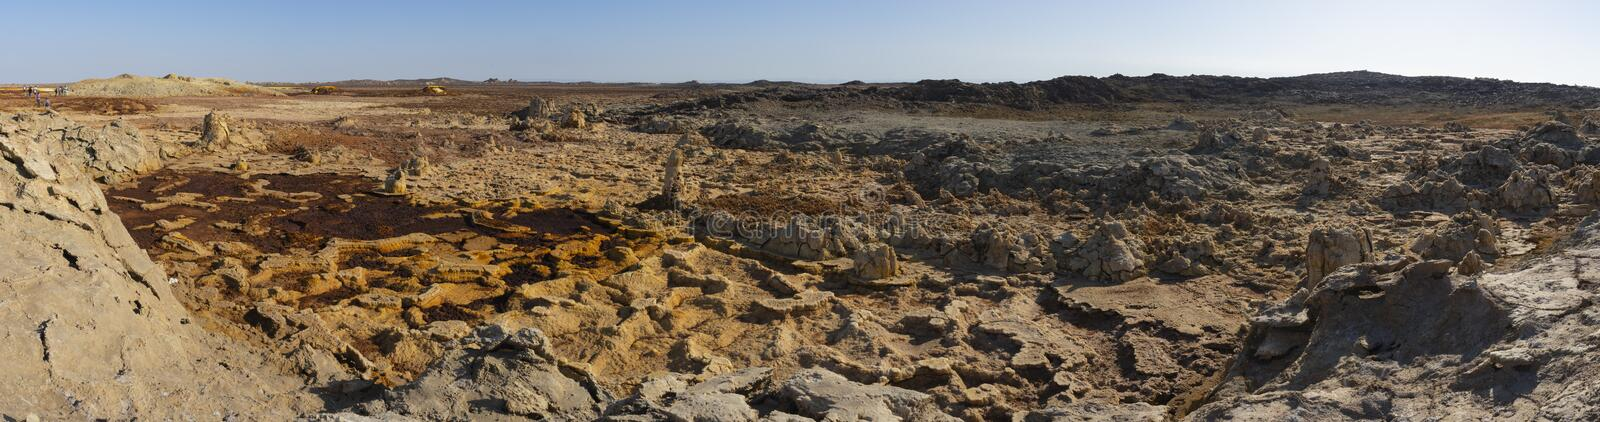 Close up of the acid and salty concretions in Dallol site in the Danakil Depression in Ethiopia, Africa. Close up of the acid and salty concretions in Dallol stock image